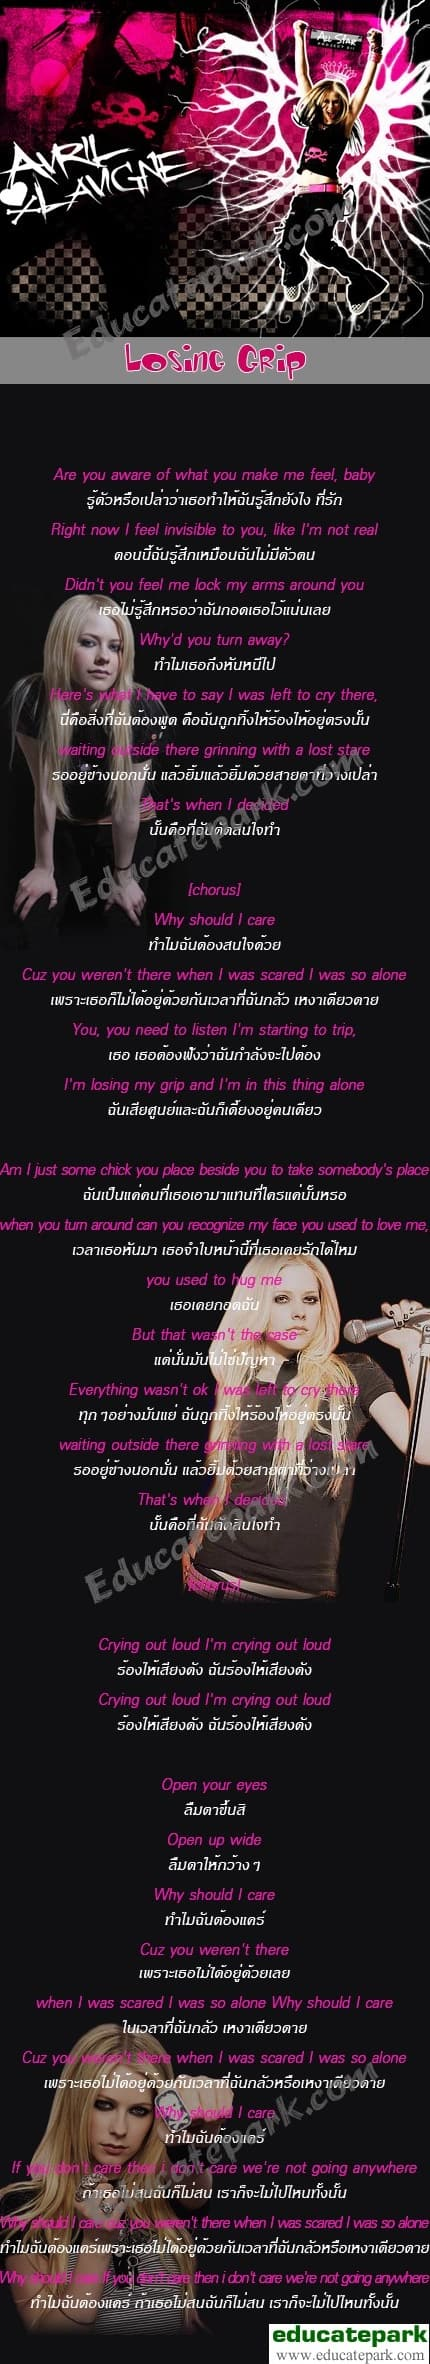 แปลเพลง Losing Grip - AVRIL LAVIGNE